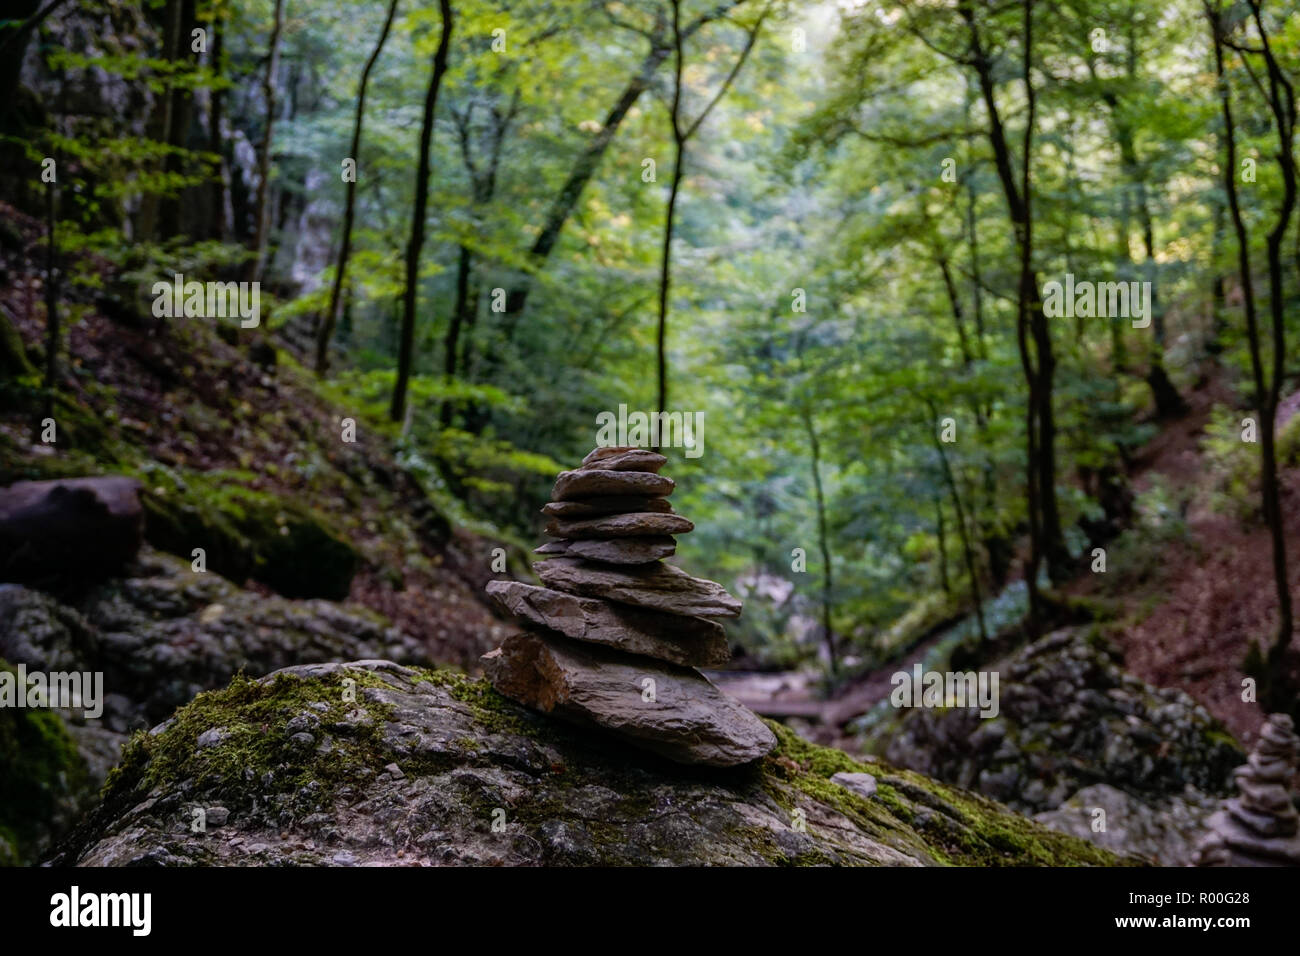 Stone formation in the forest - Stock Image